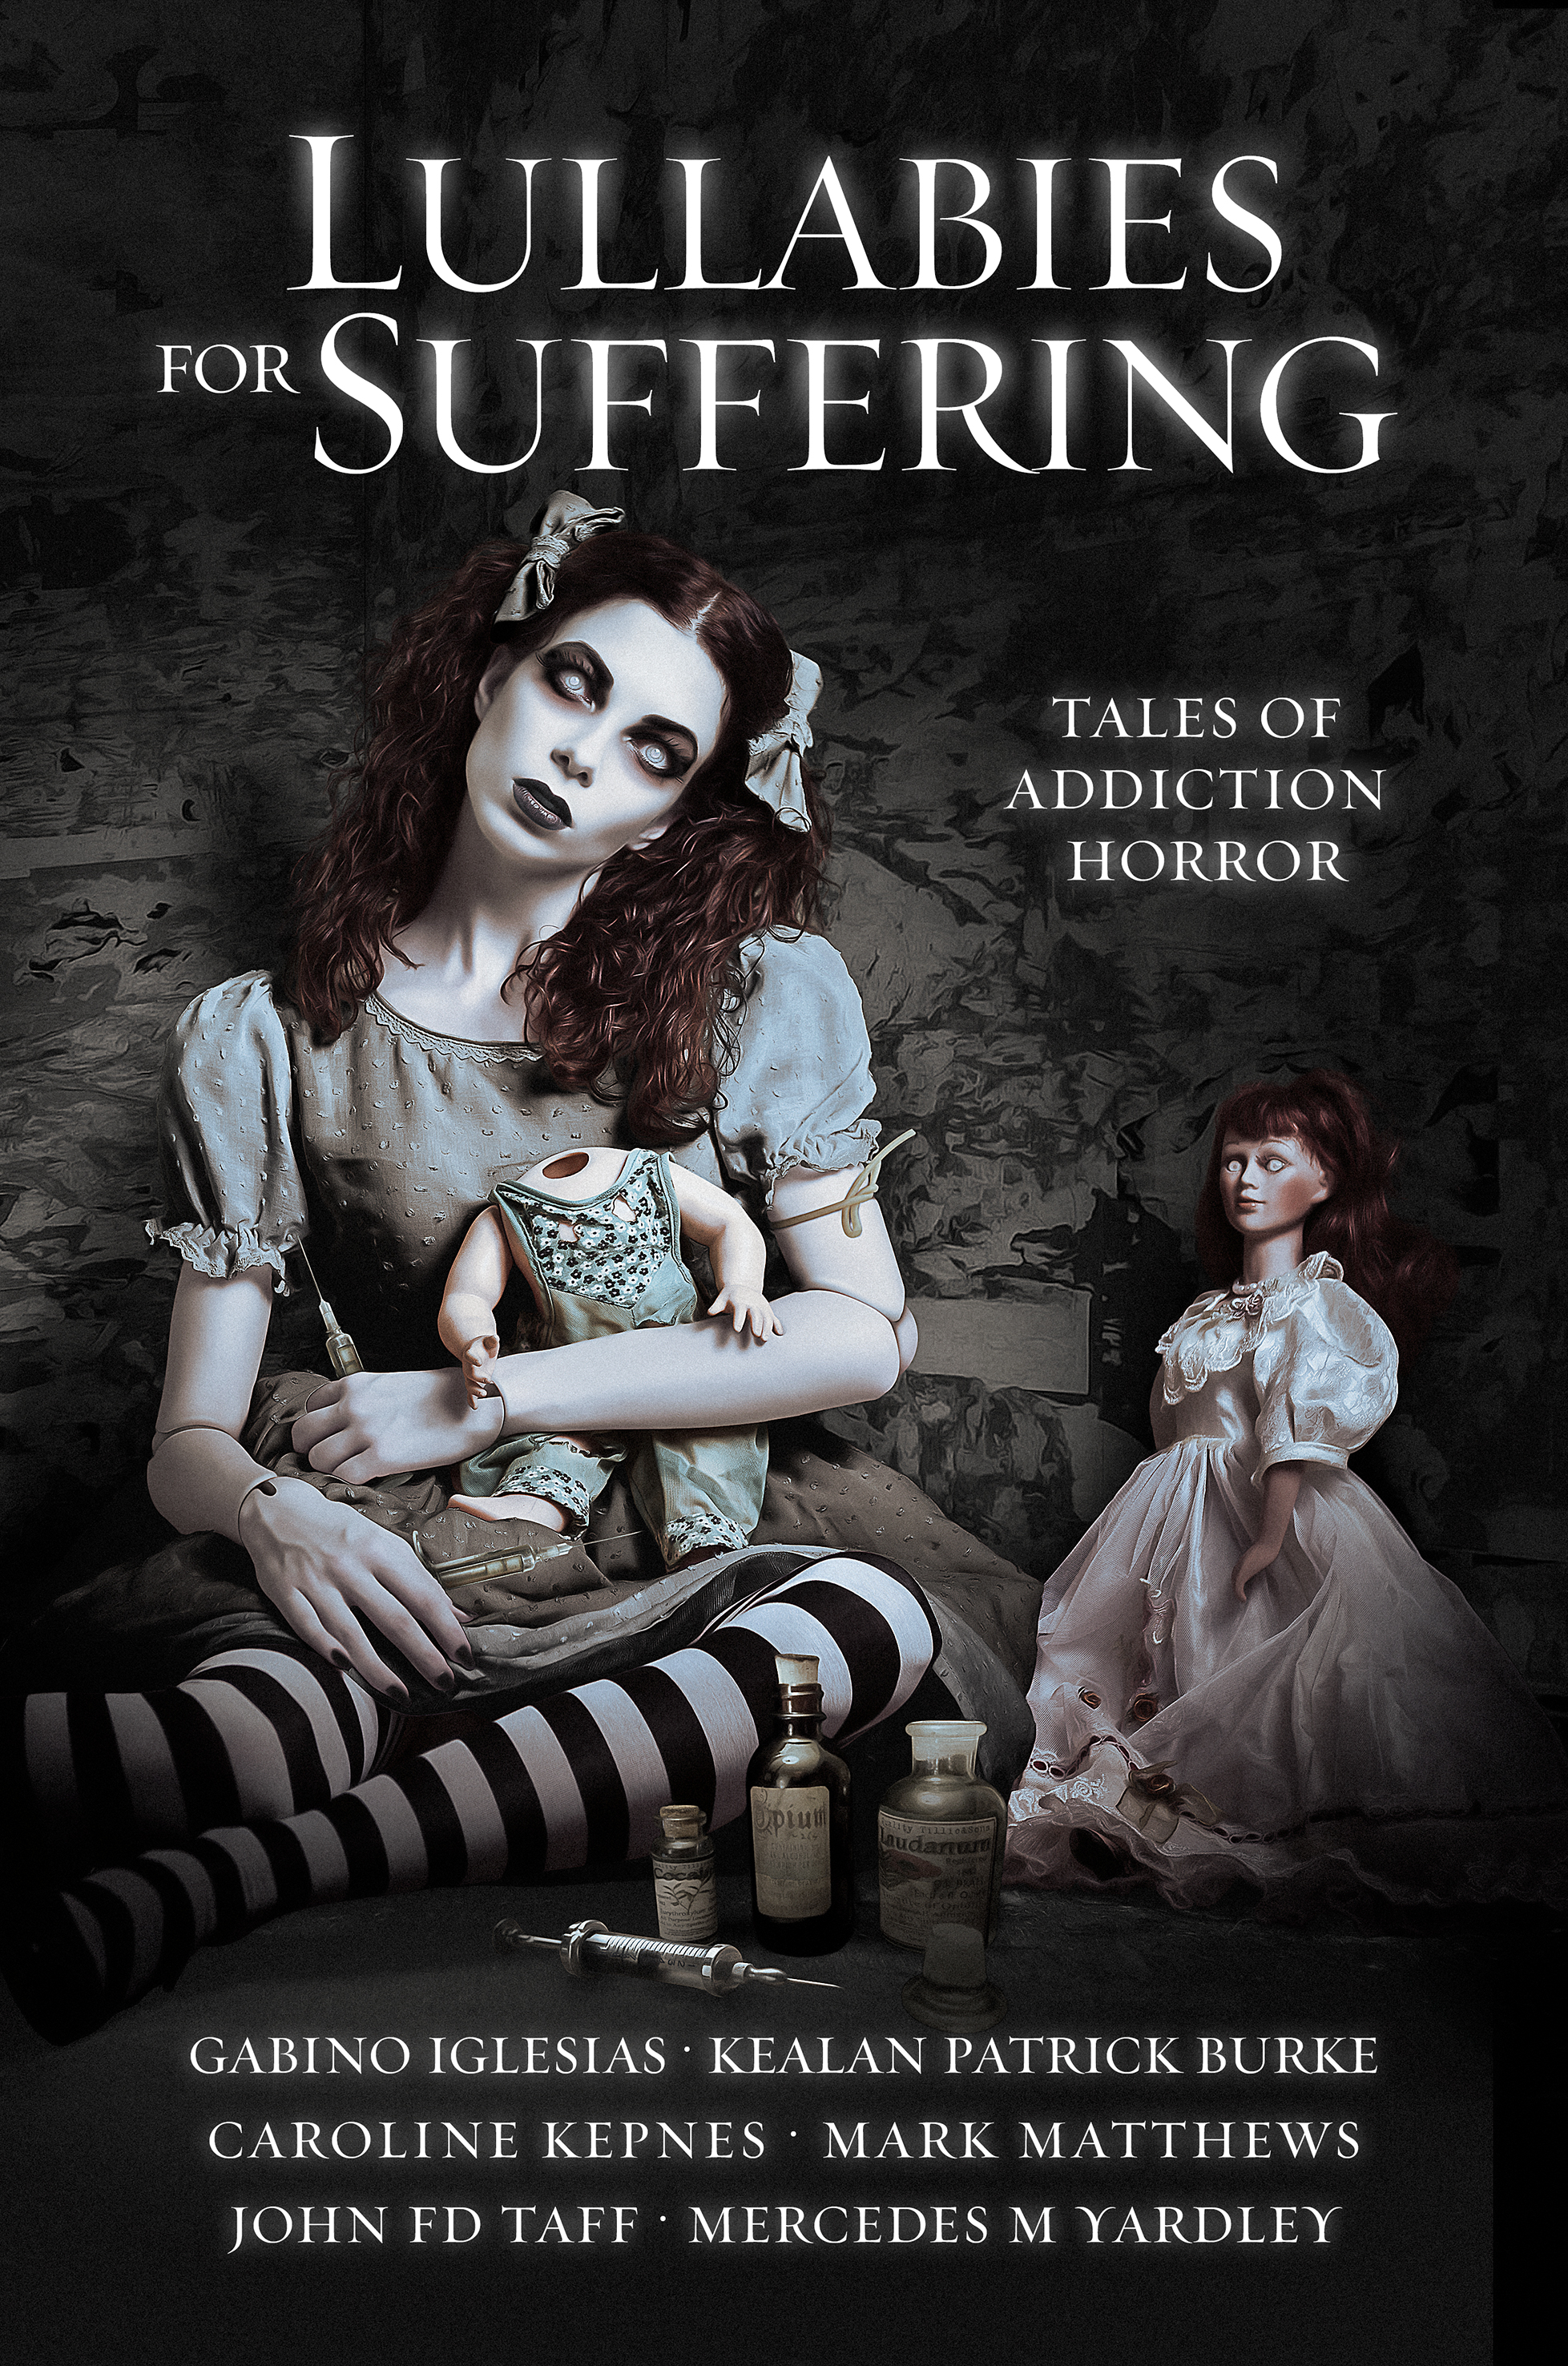 Lullabies for Suffering: Tales of Addiction Horror